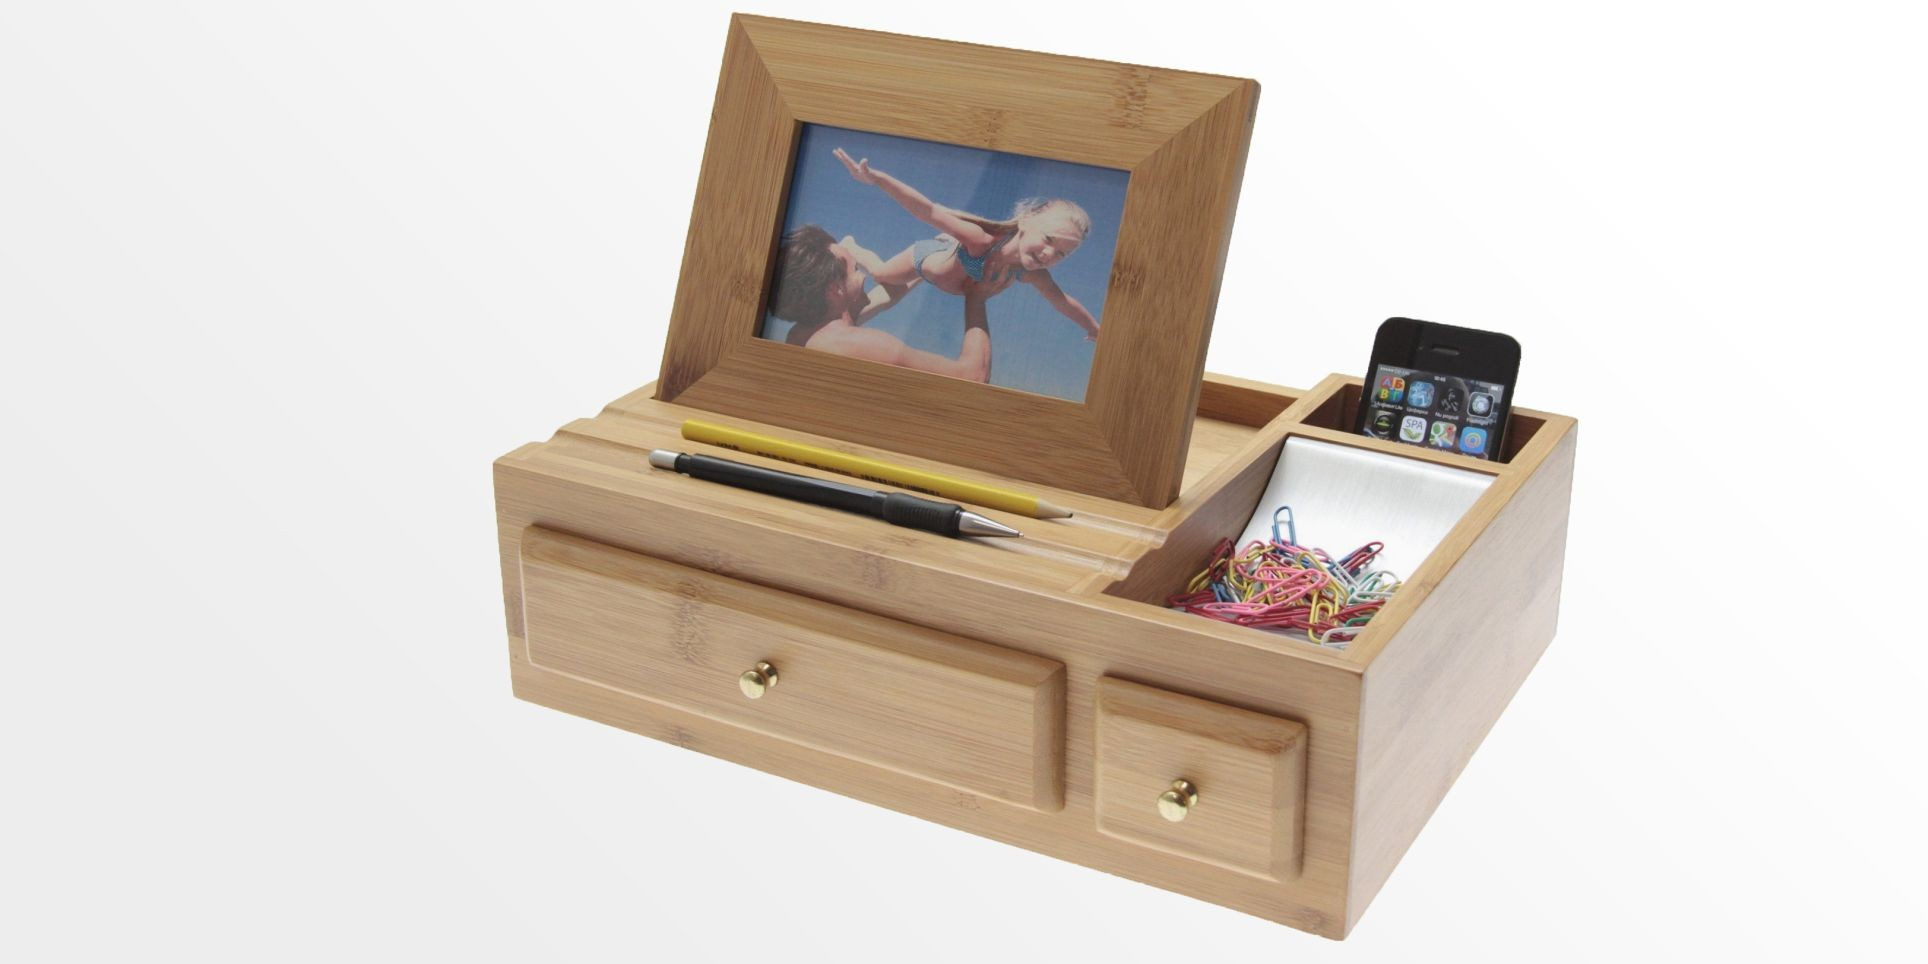 Desk Organiser Stationery Desk Organiser With Photo Frame Bamboo Stationary Box